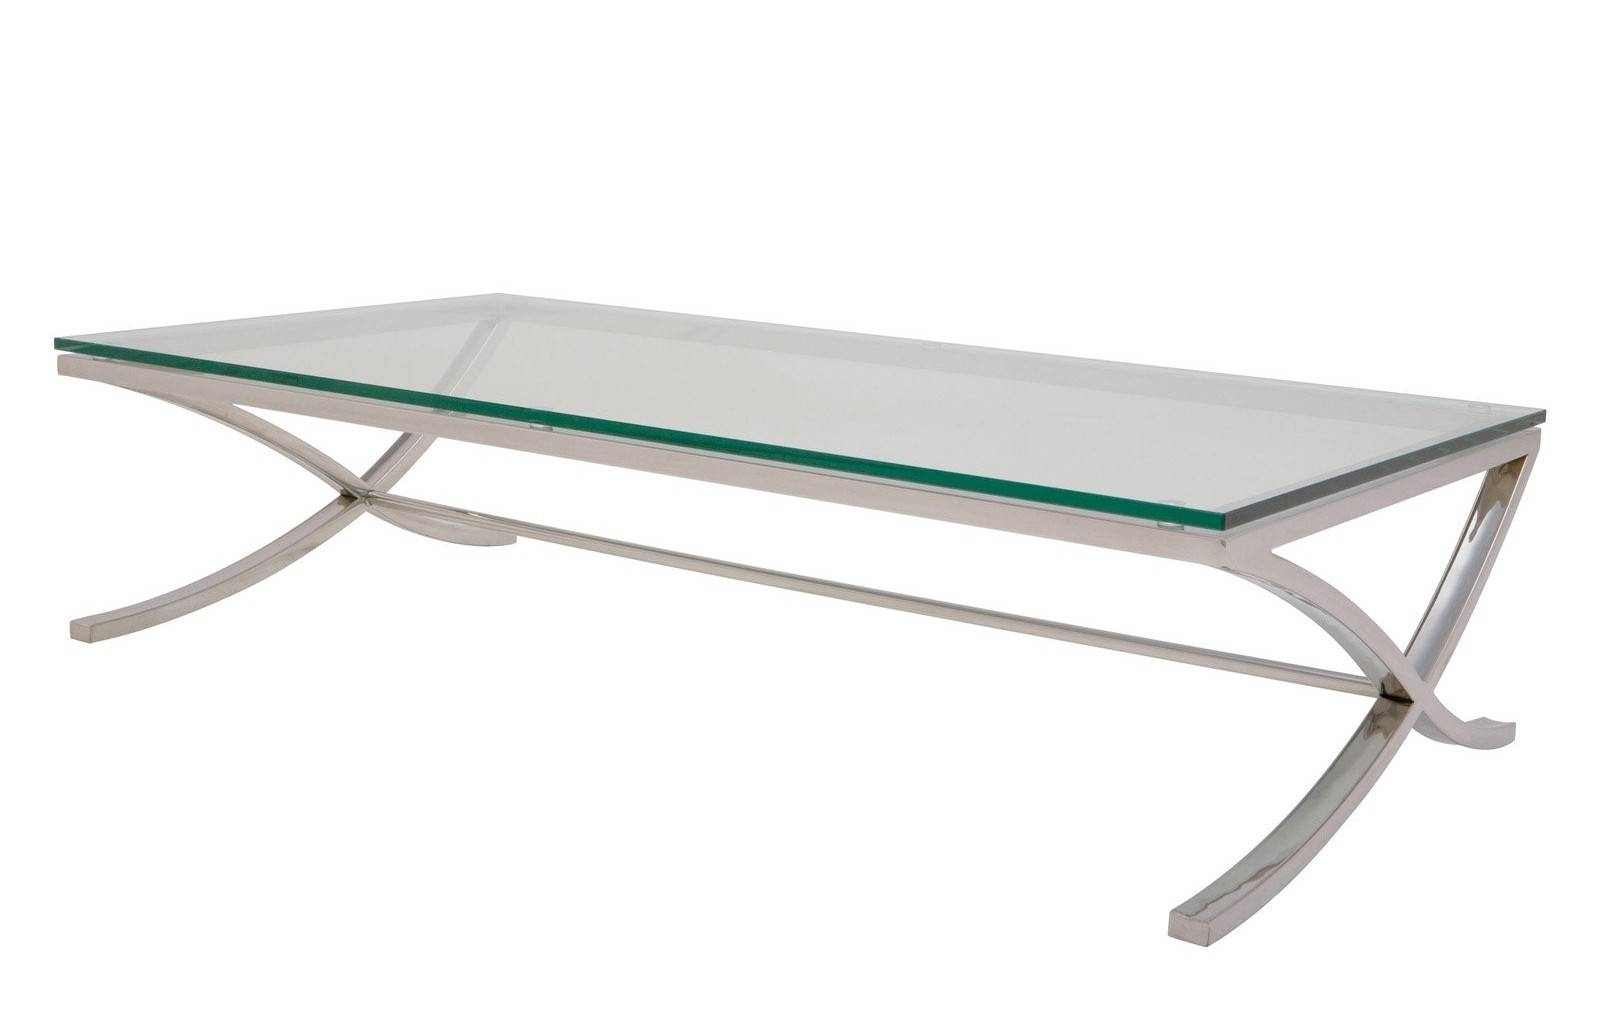 Chrome Glass Coffee Table | Coffee Tables Decoration with regard to Round Chrome Coffee Tables (Image 4 of 30)